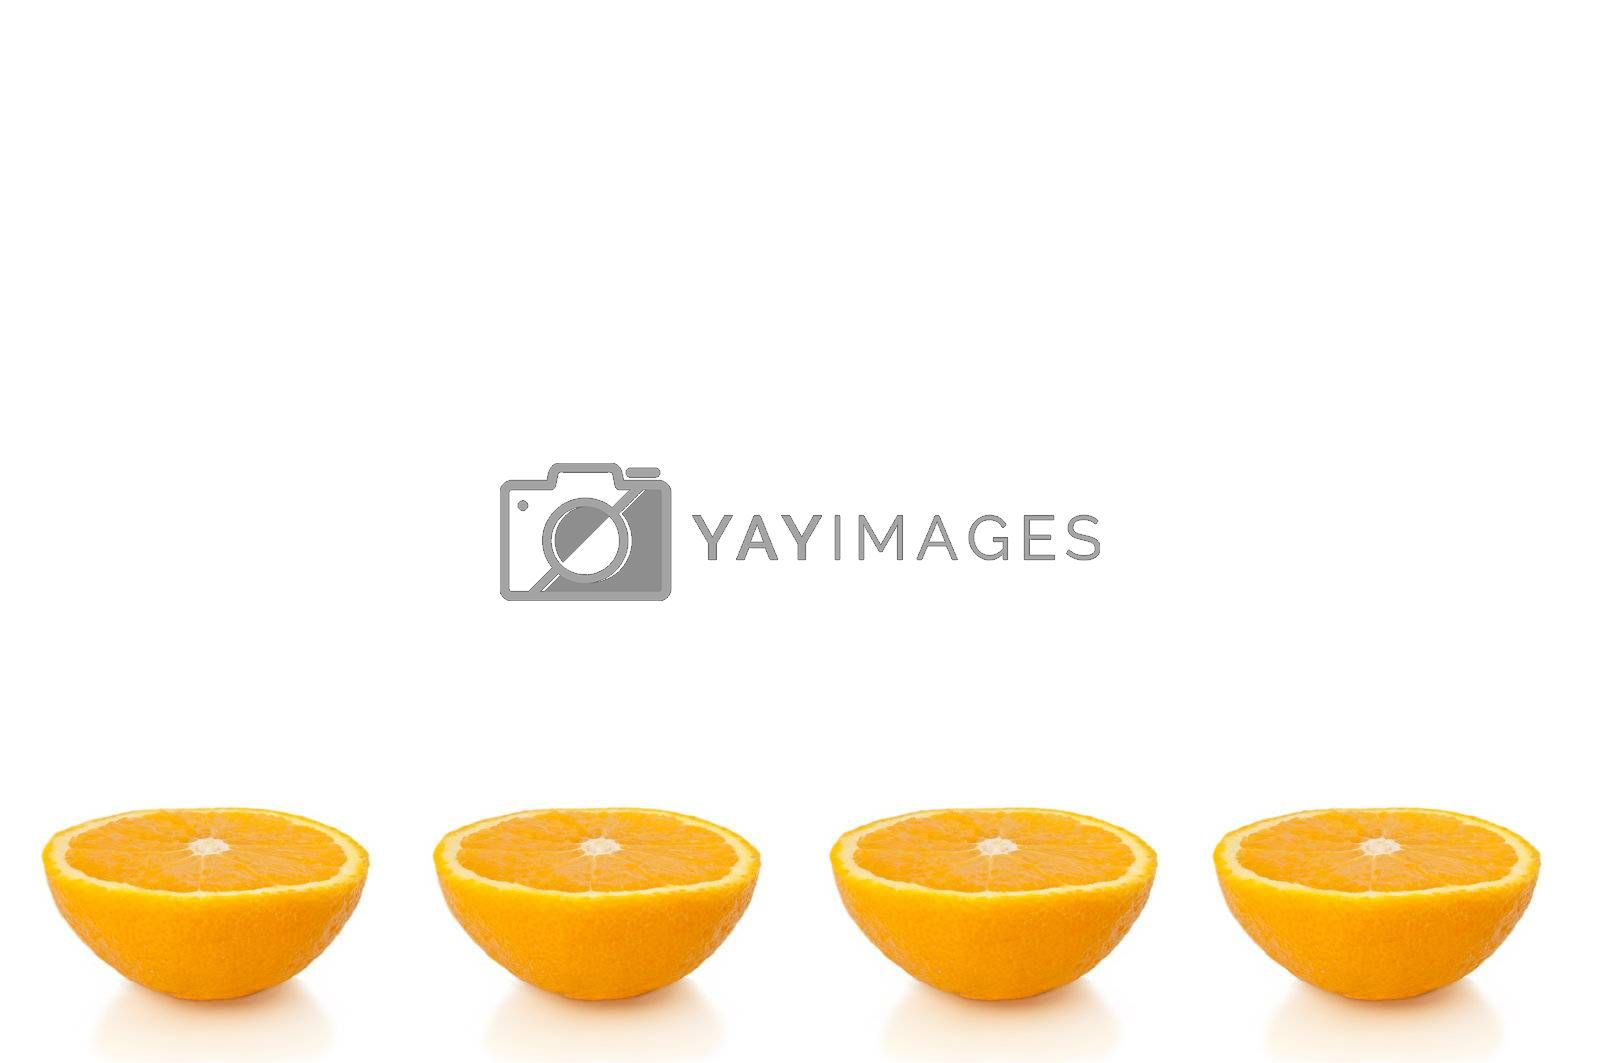 Four small orange halves arranged in a horizontal line along the bottom of the image and over white.